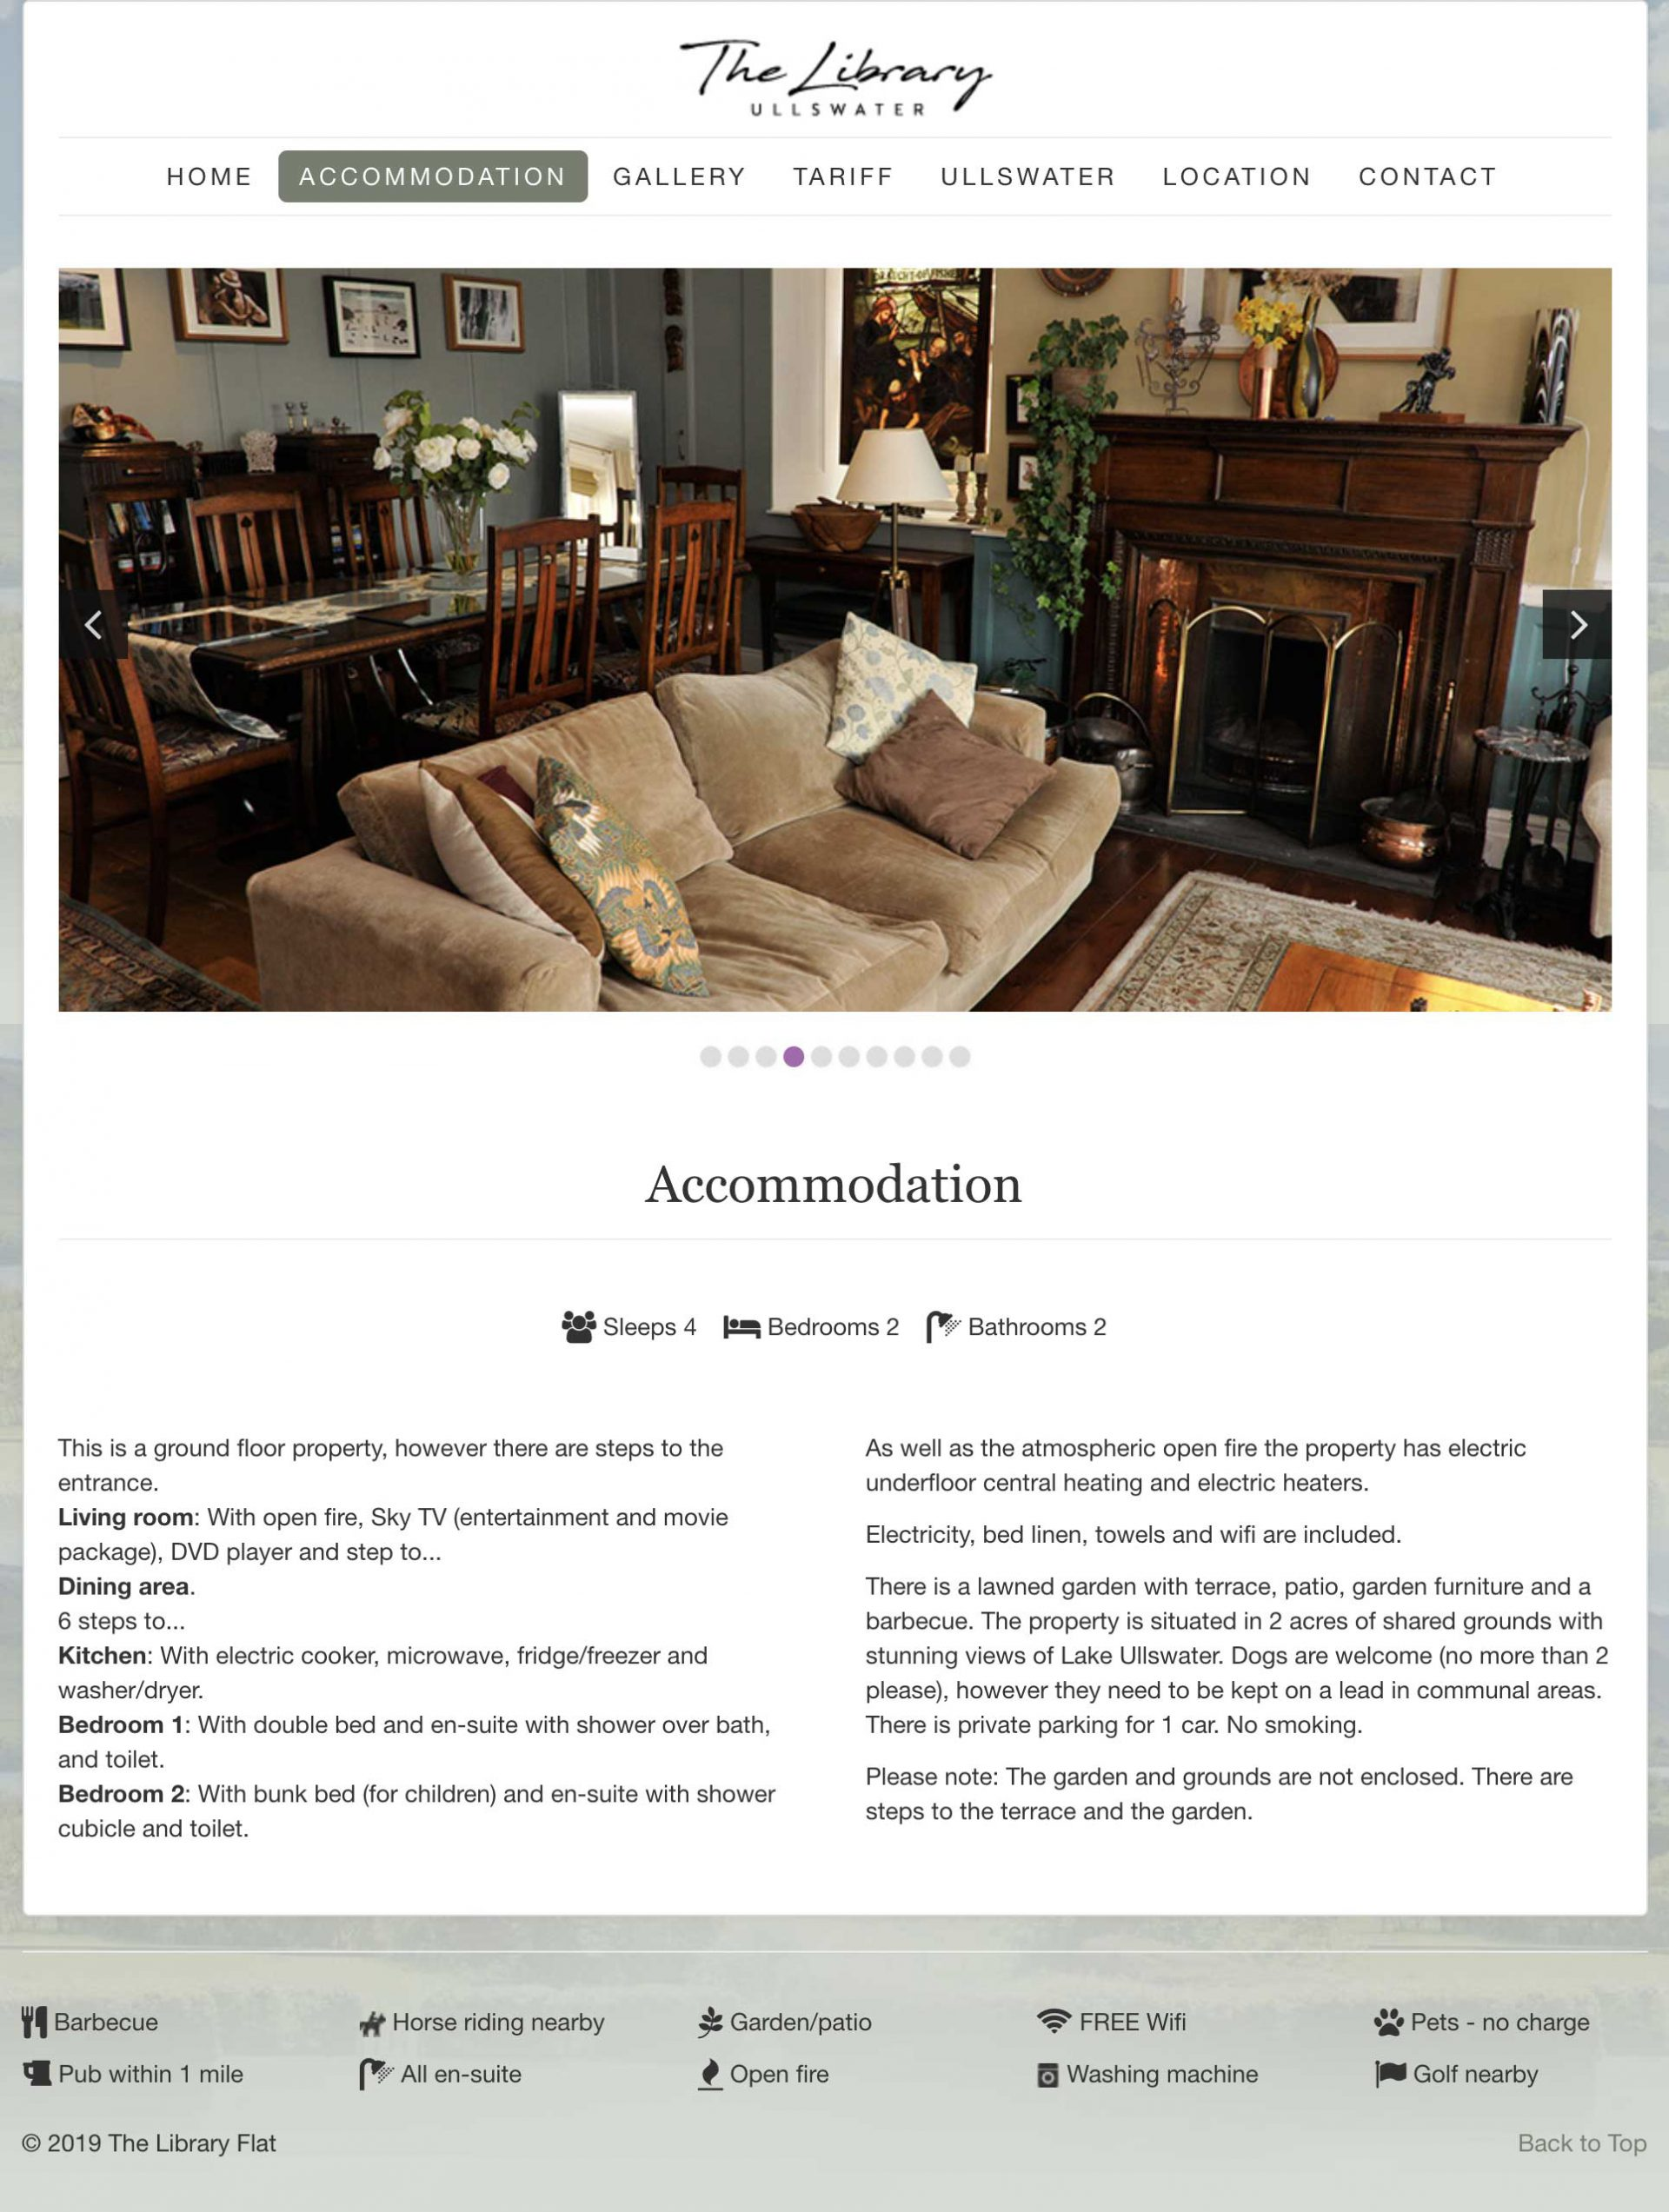 website design - The Library, accommodation